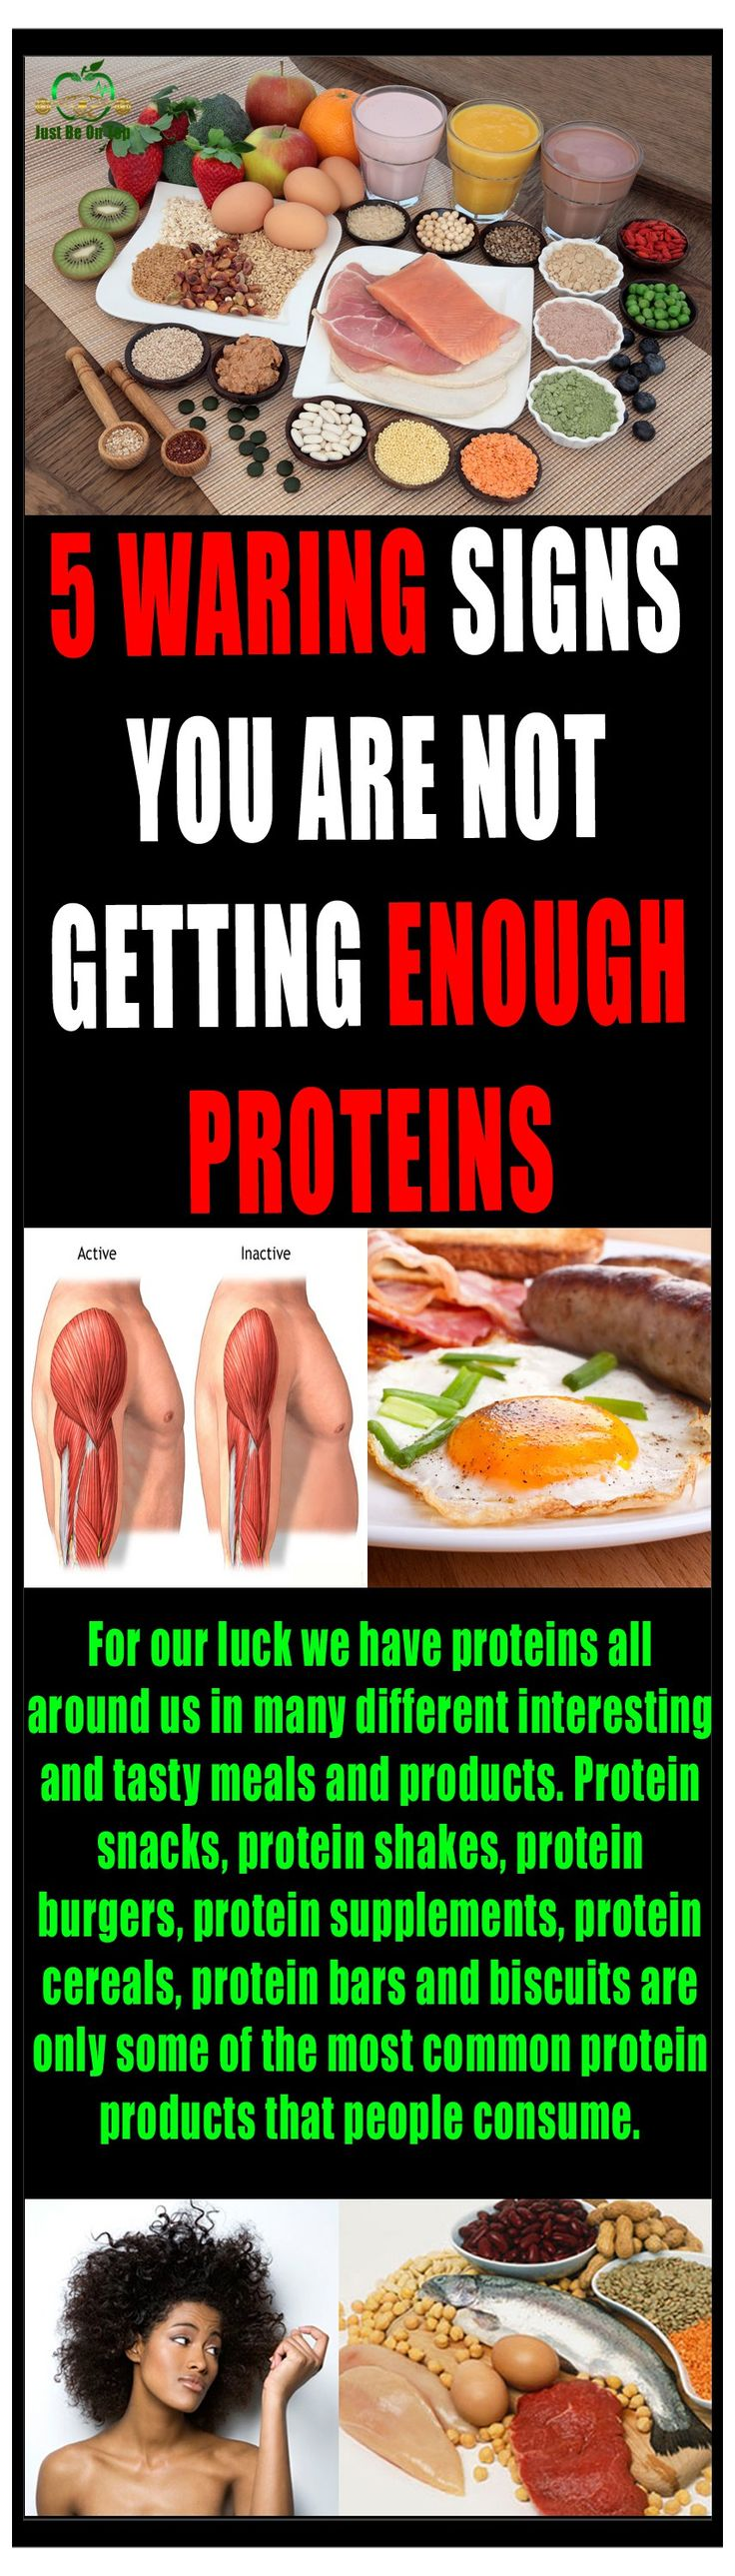 For our luck, we have proteins all around us in many different interesting and tasty meals and products. Protein snacks, protein shakes, protein burgers, protein supplements, protein cereals, protein bars and biscuits are only some of the most common protein products that people consume.